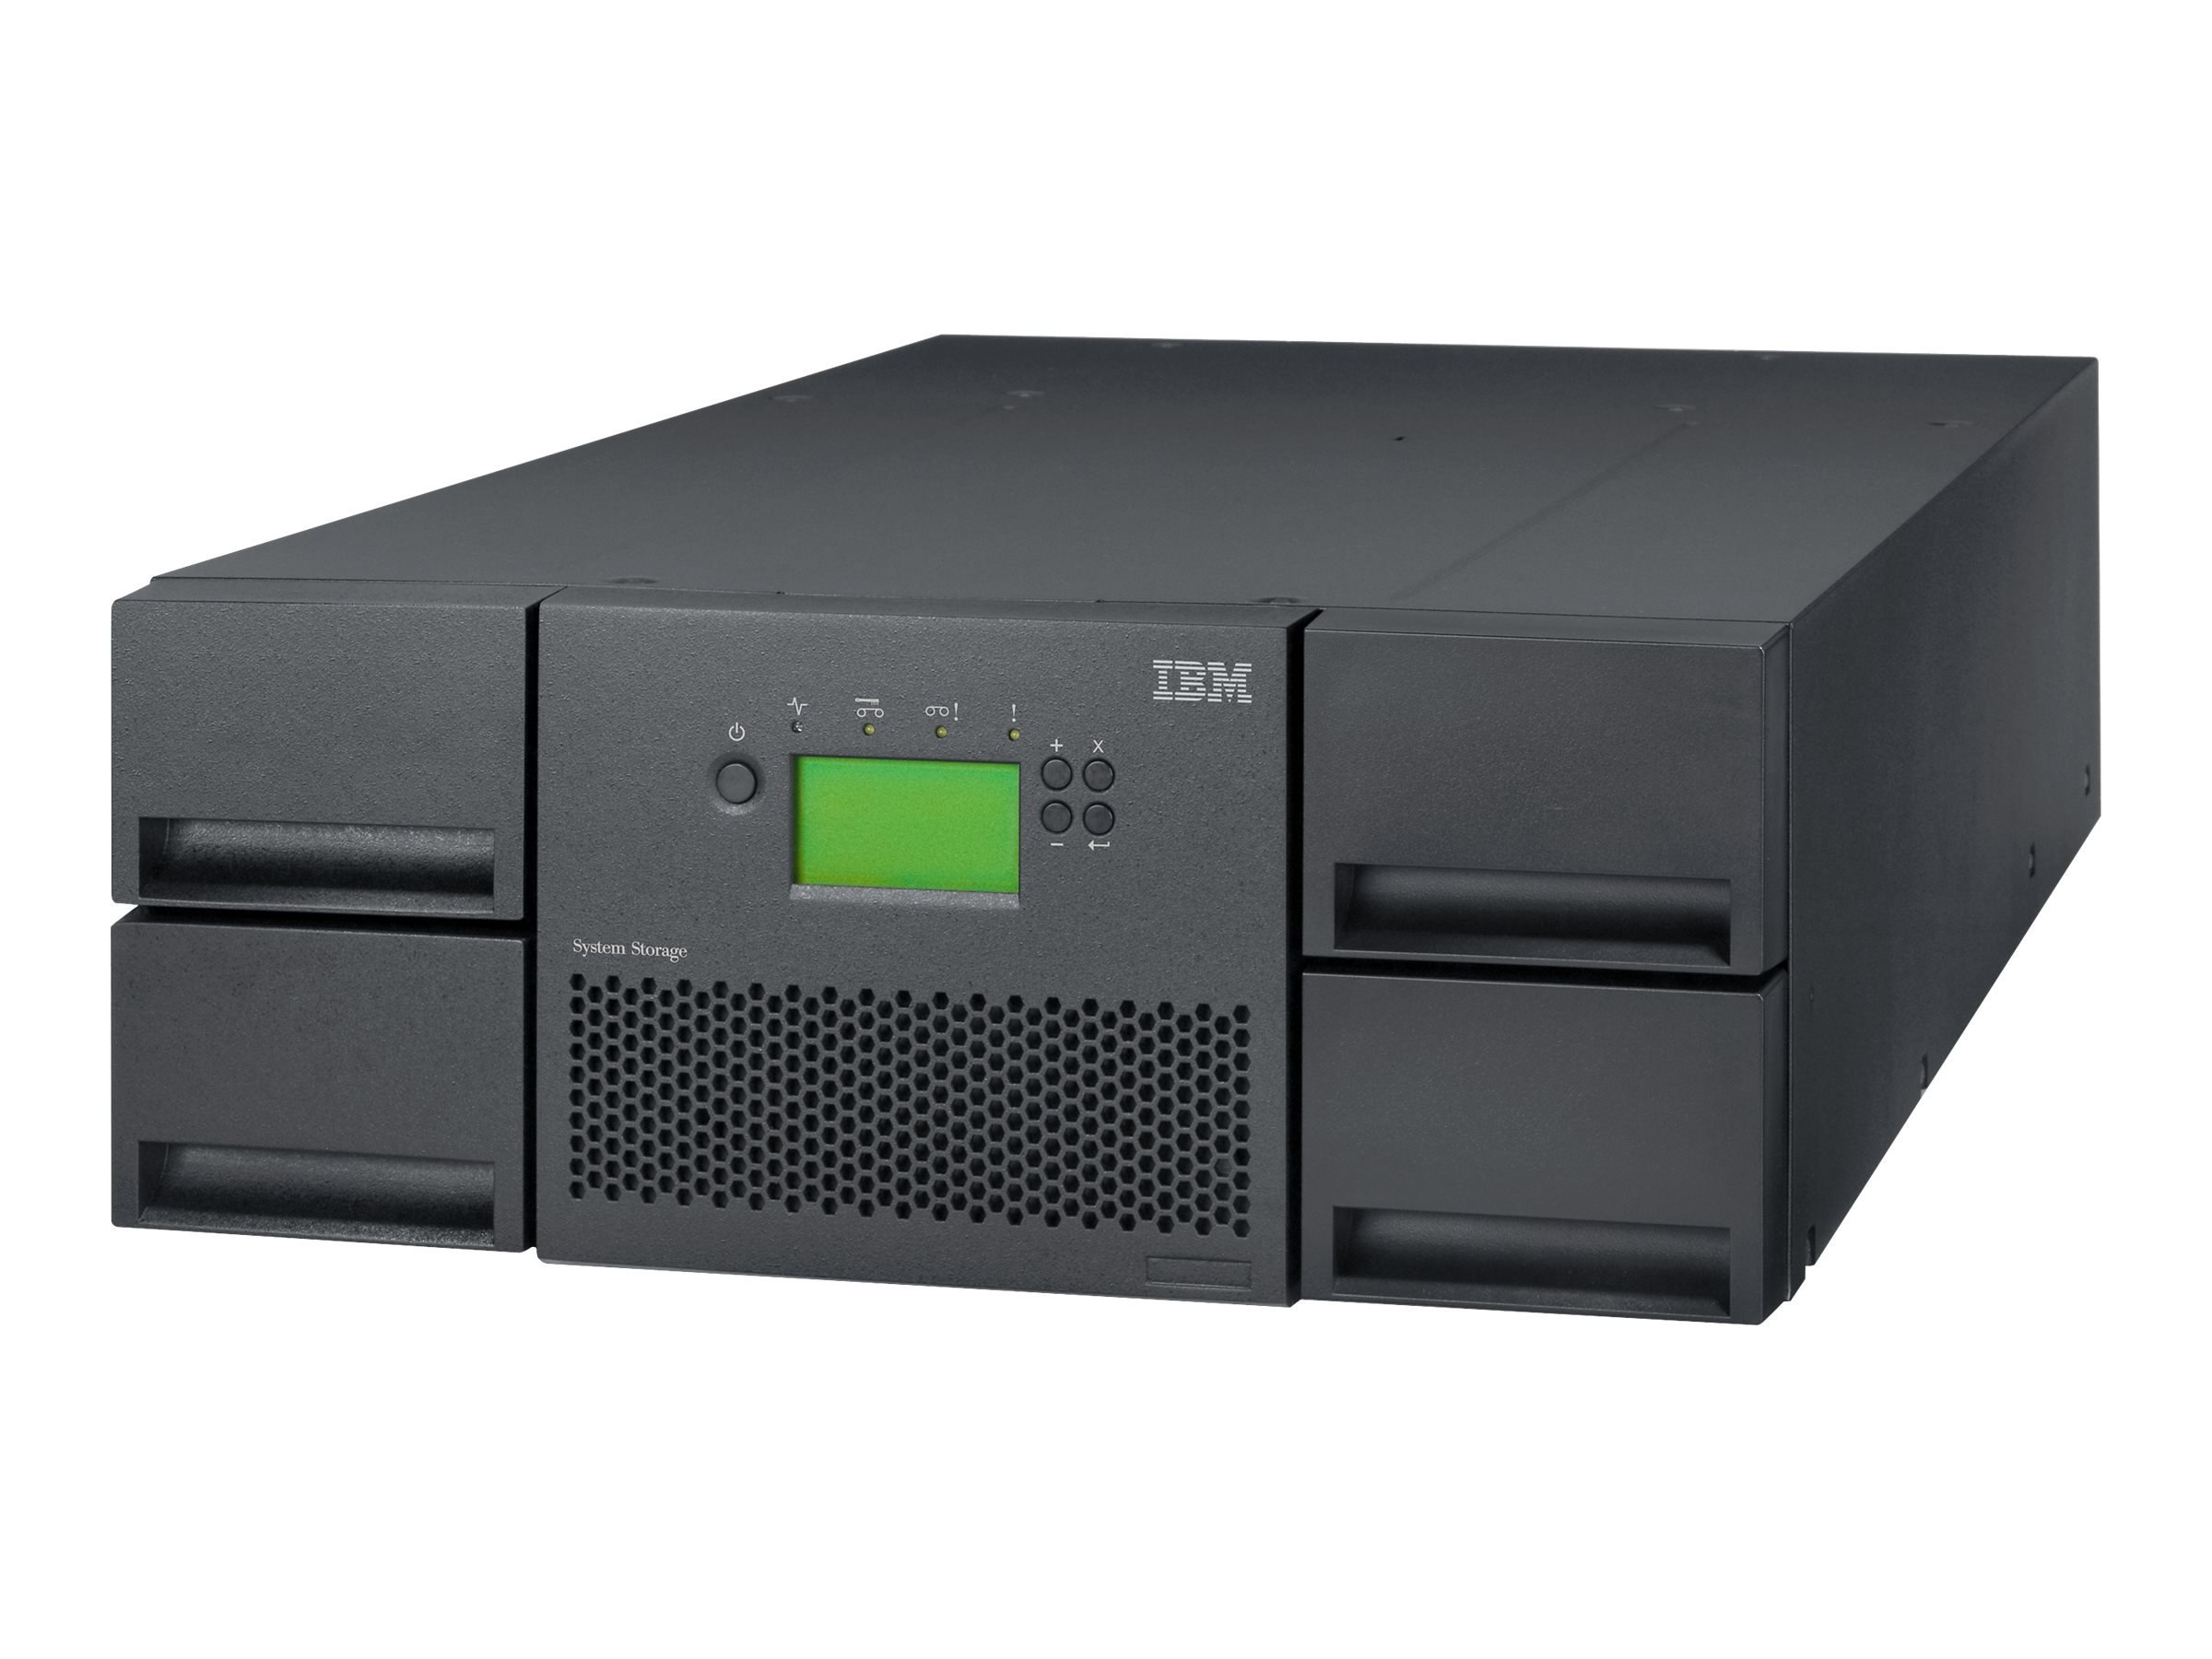 Lenovo TS3200 Model L4U Tape Library